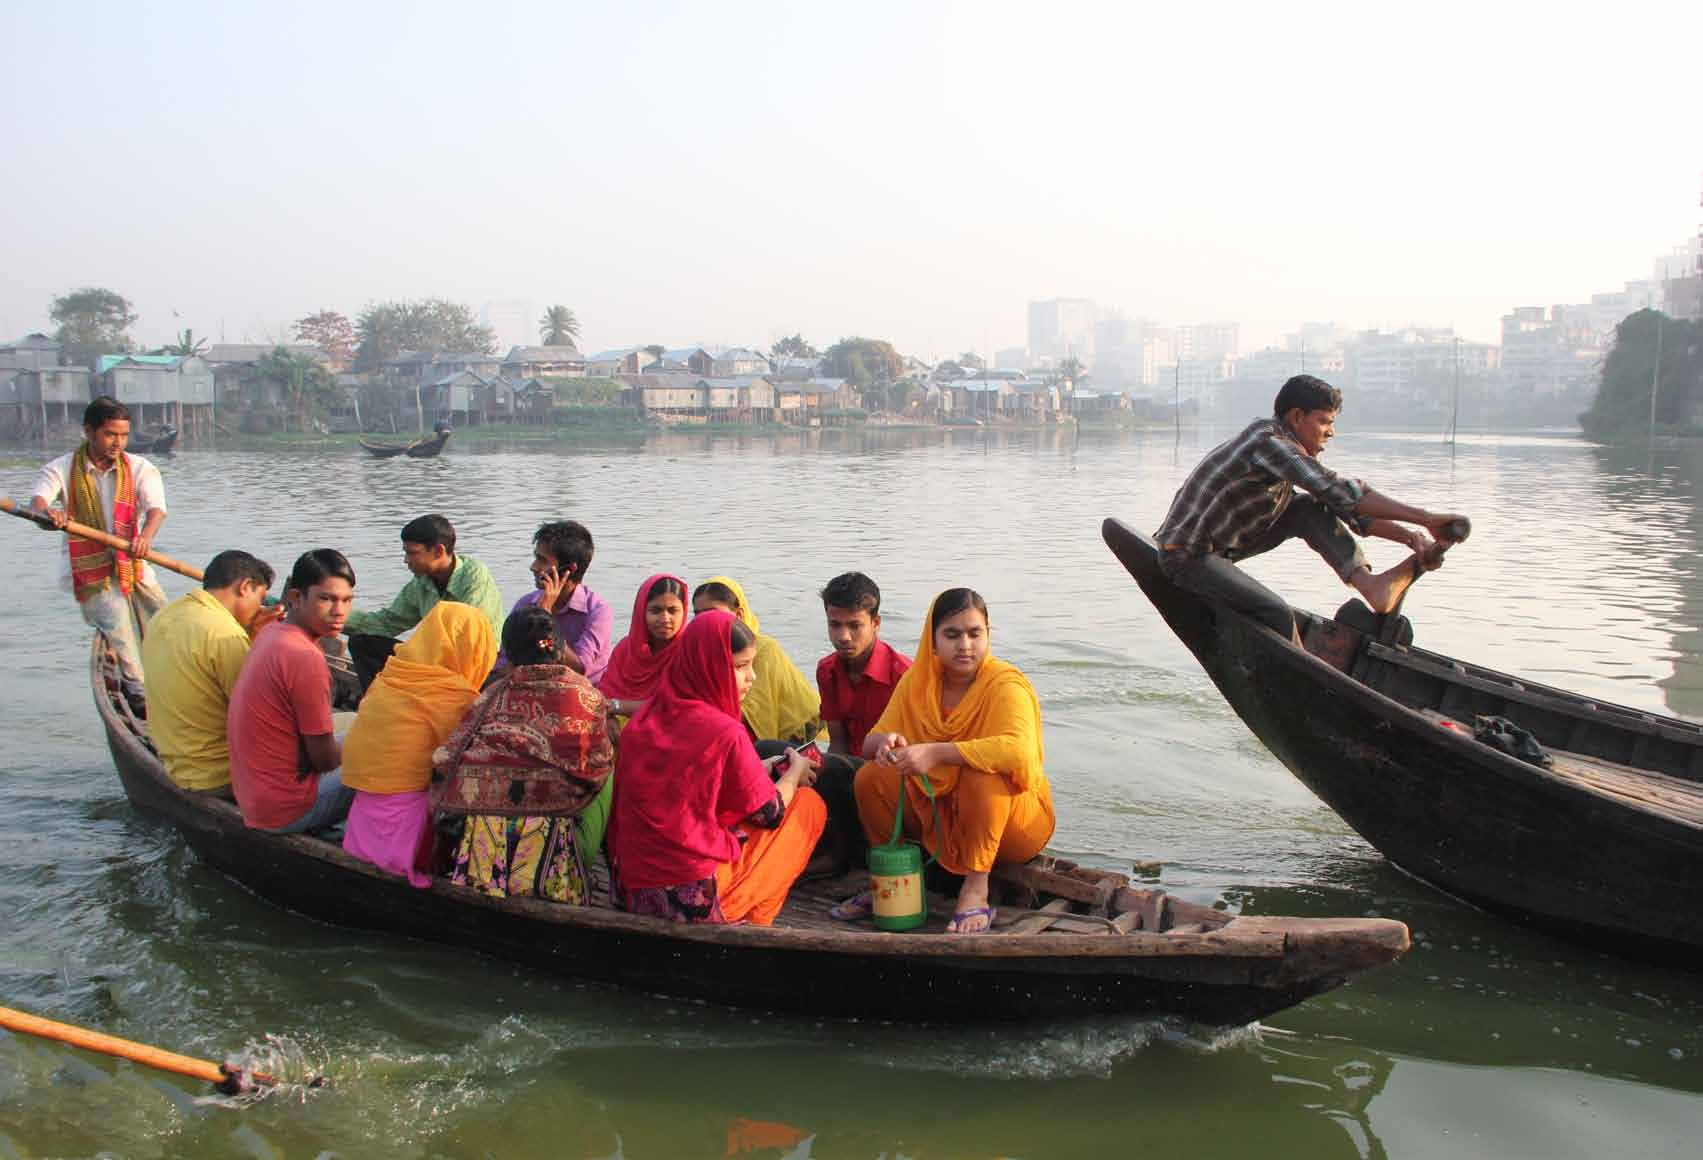 BISHAWJIT DAS Garment workers living on an island slum in central Dhaka begin their morning commute by ferry.